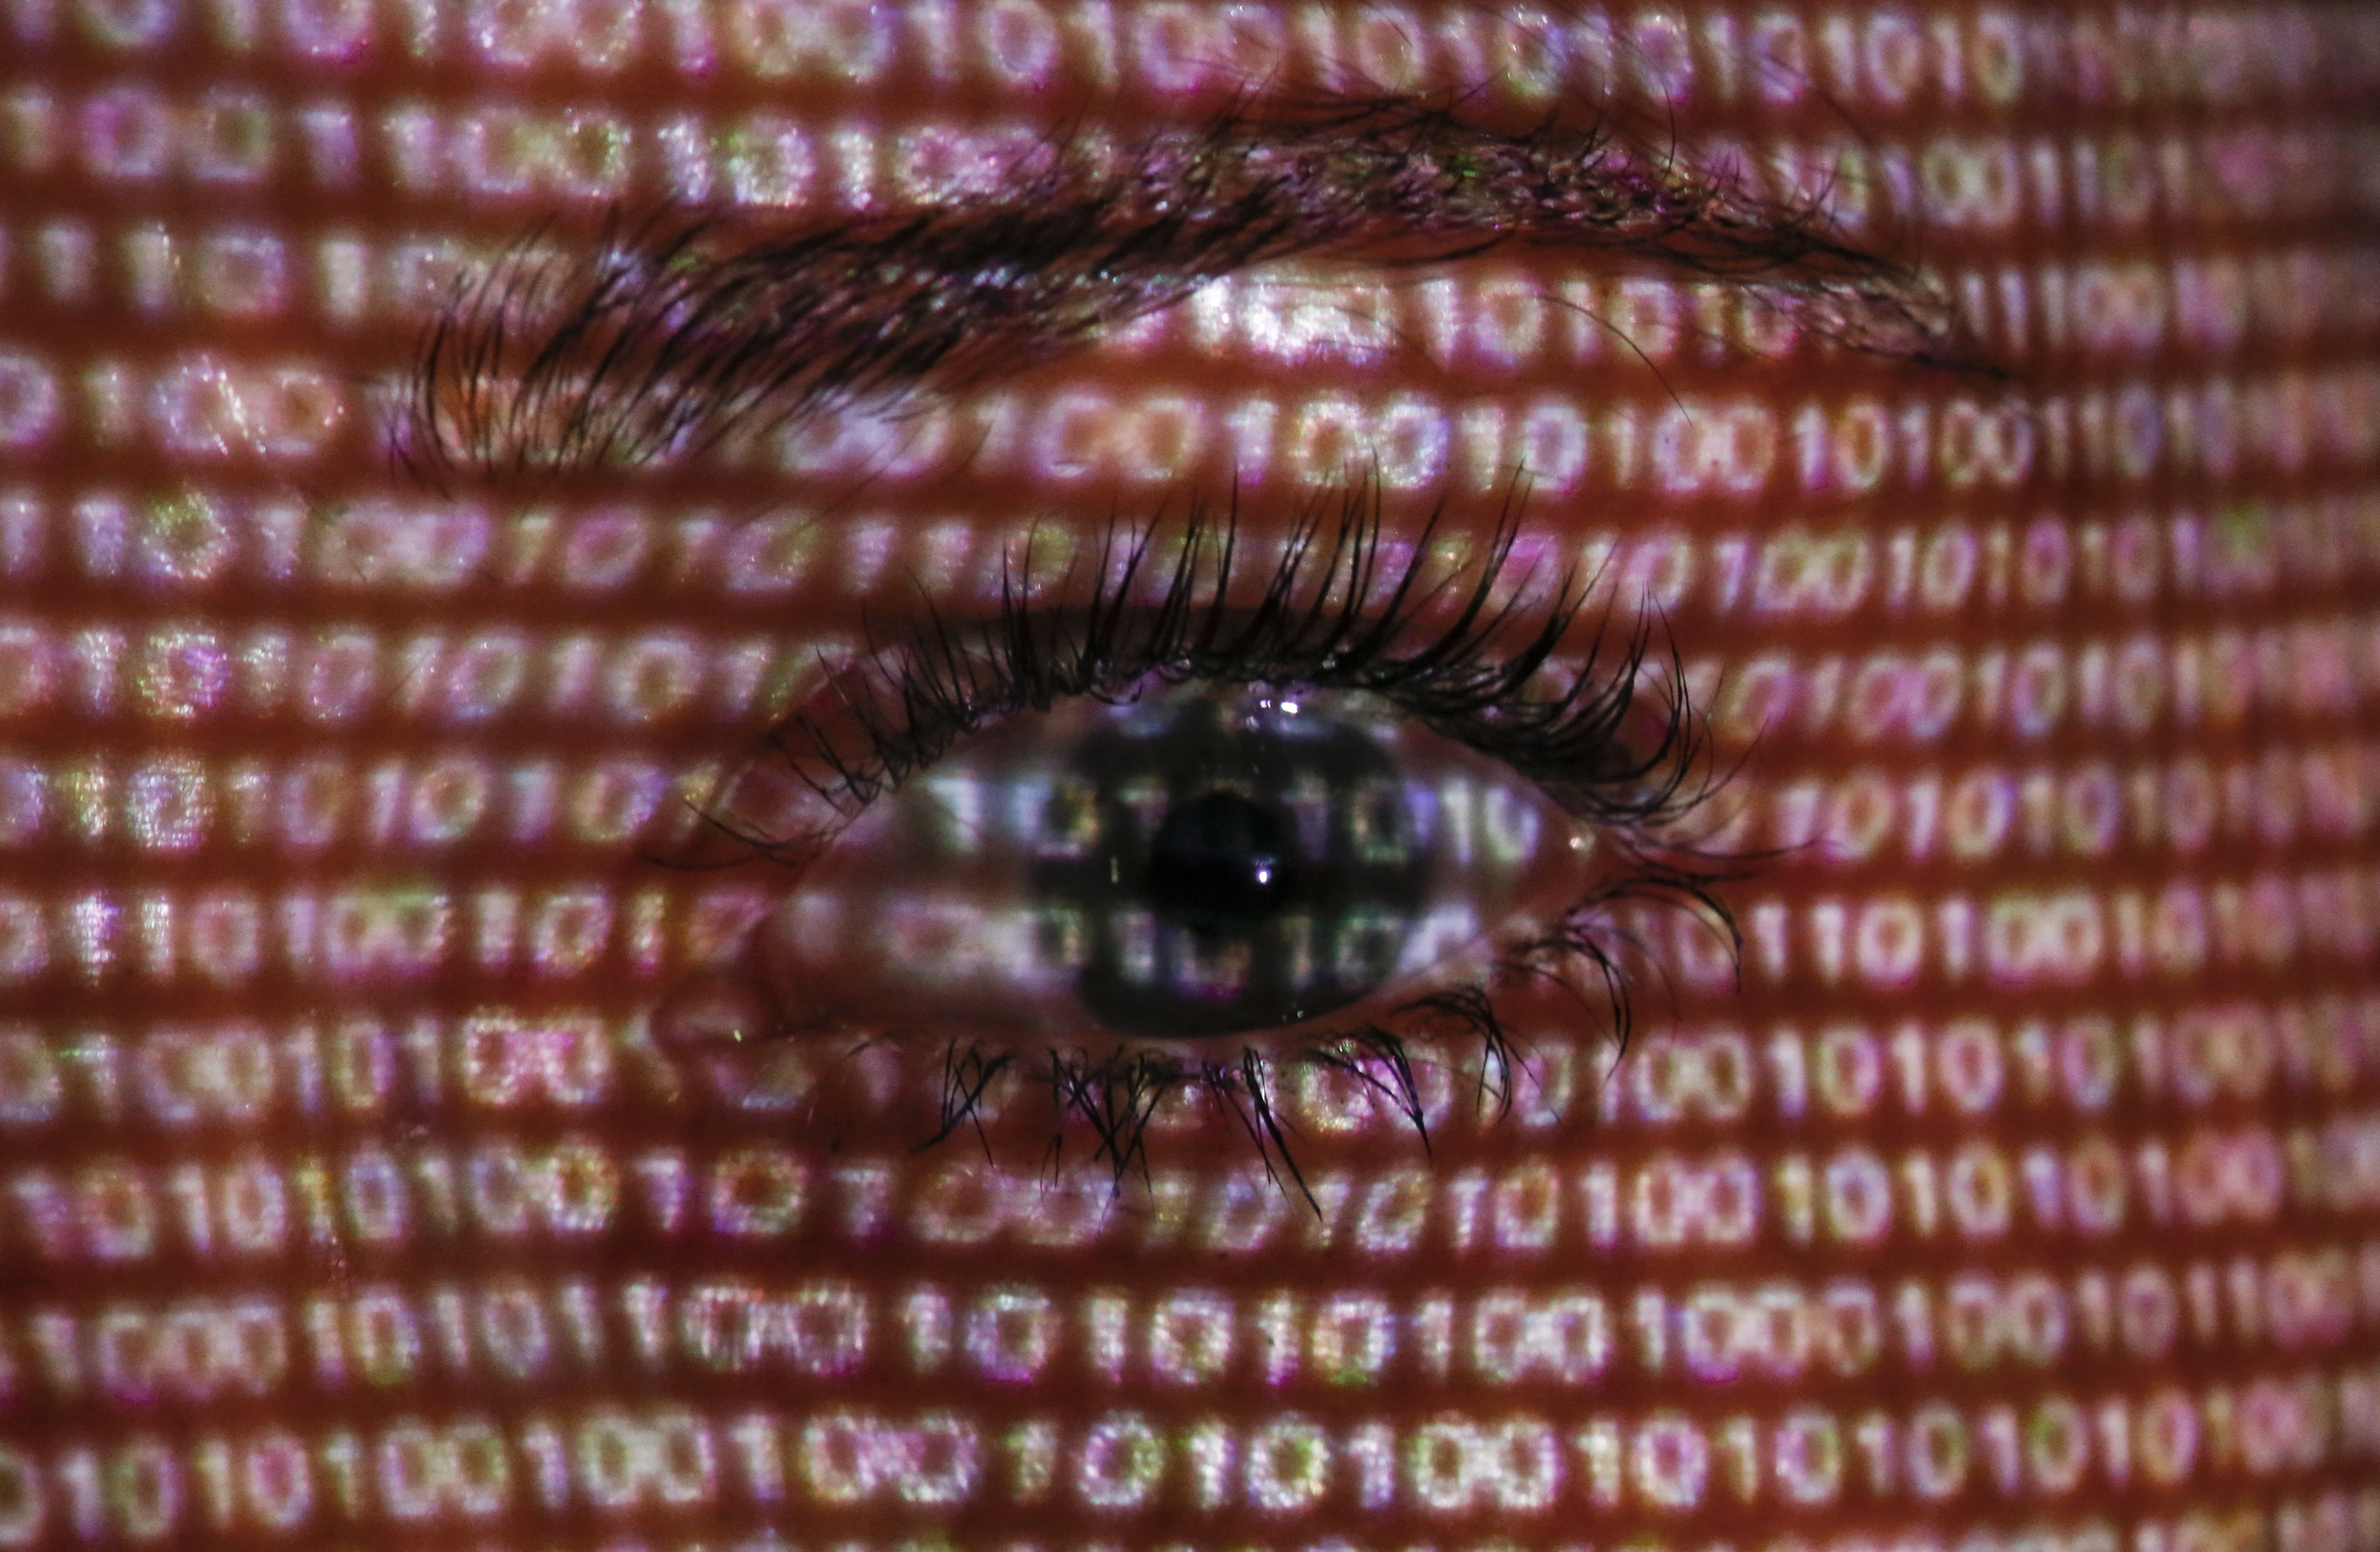 """An illustration picture shows a projection of text on the face of a woman in Berlin, June 12, 2013. The European Union's chief justice official has written to the U.S. attorney general demanding an explanation for the collection of foreign nationals' data following disclosures about the """"PRISM"""" spy programme.   REUTERS/Pawel Kopczynski  (GERMANY - Tags: SOCIETY POLITICS) - BM2E96C1BH701"""